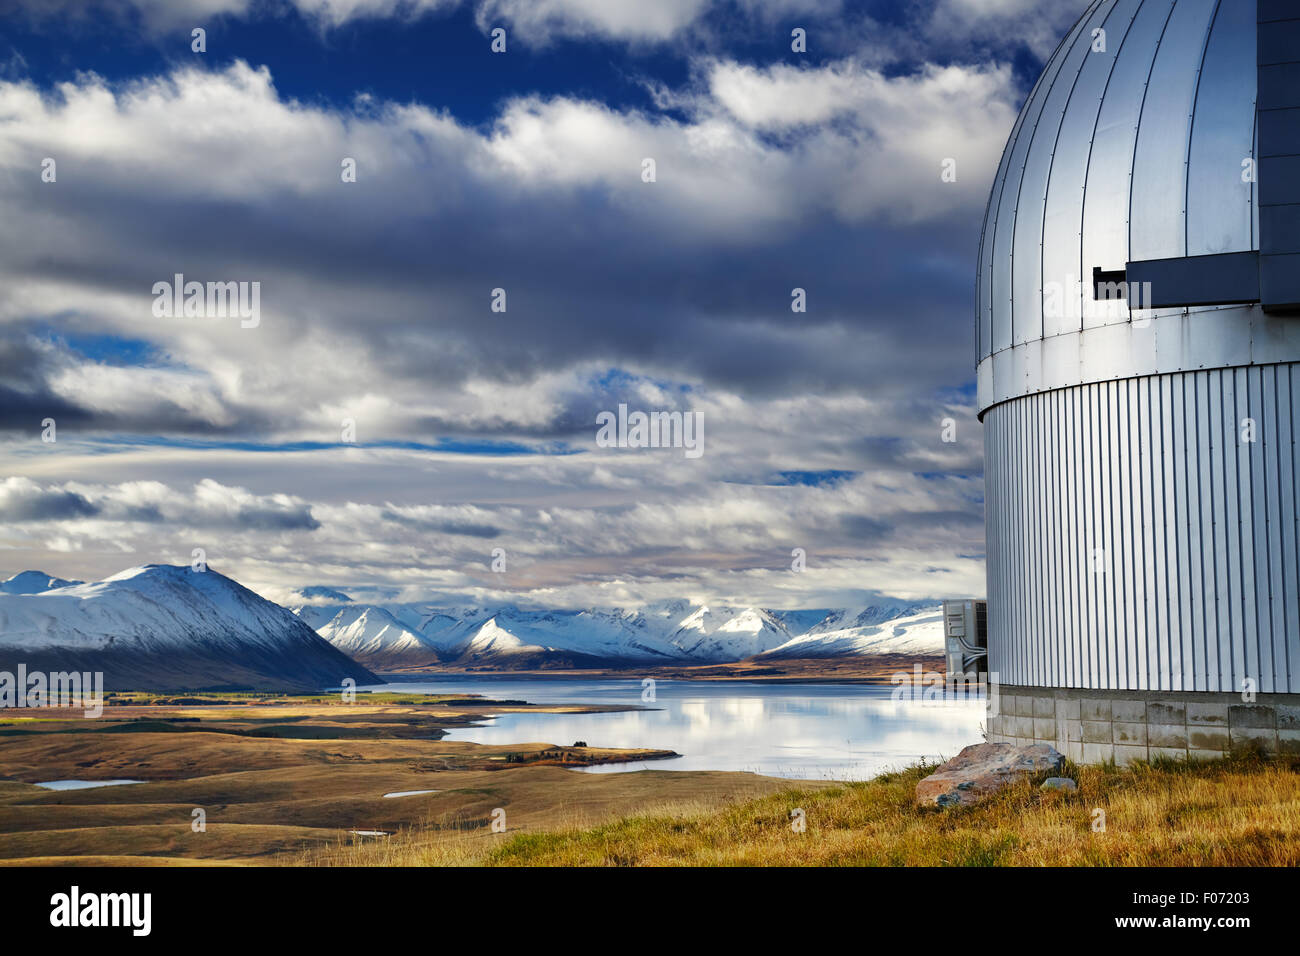 View from Mount John Observatory, Lake Tekapo, Mackenzie Country, New Zealand - Stock Image